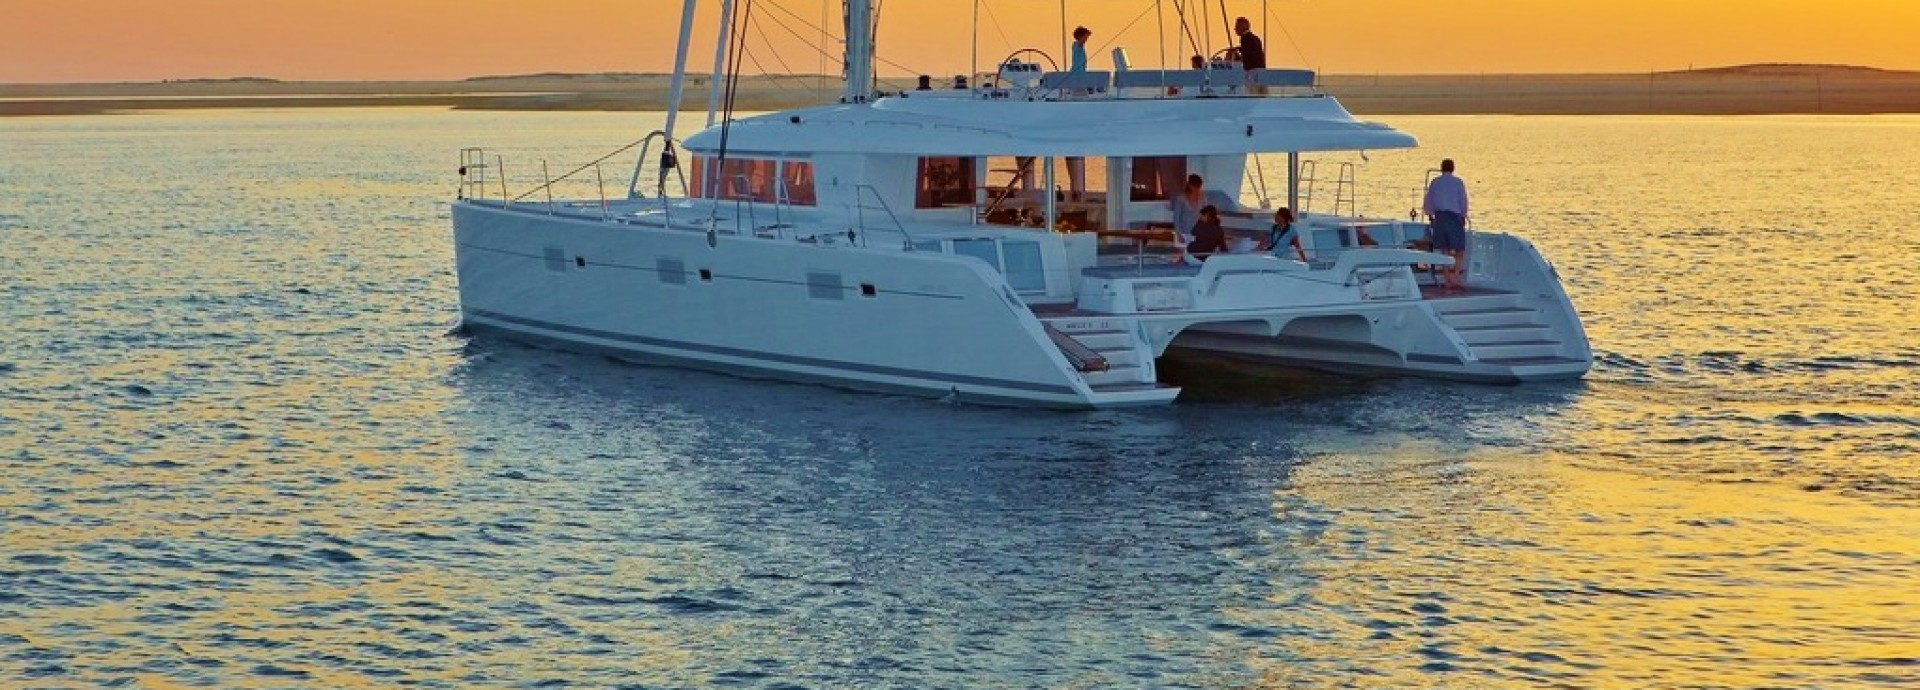 Lagoon 620 Anchored at Sunset